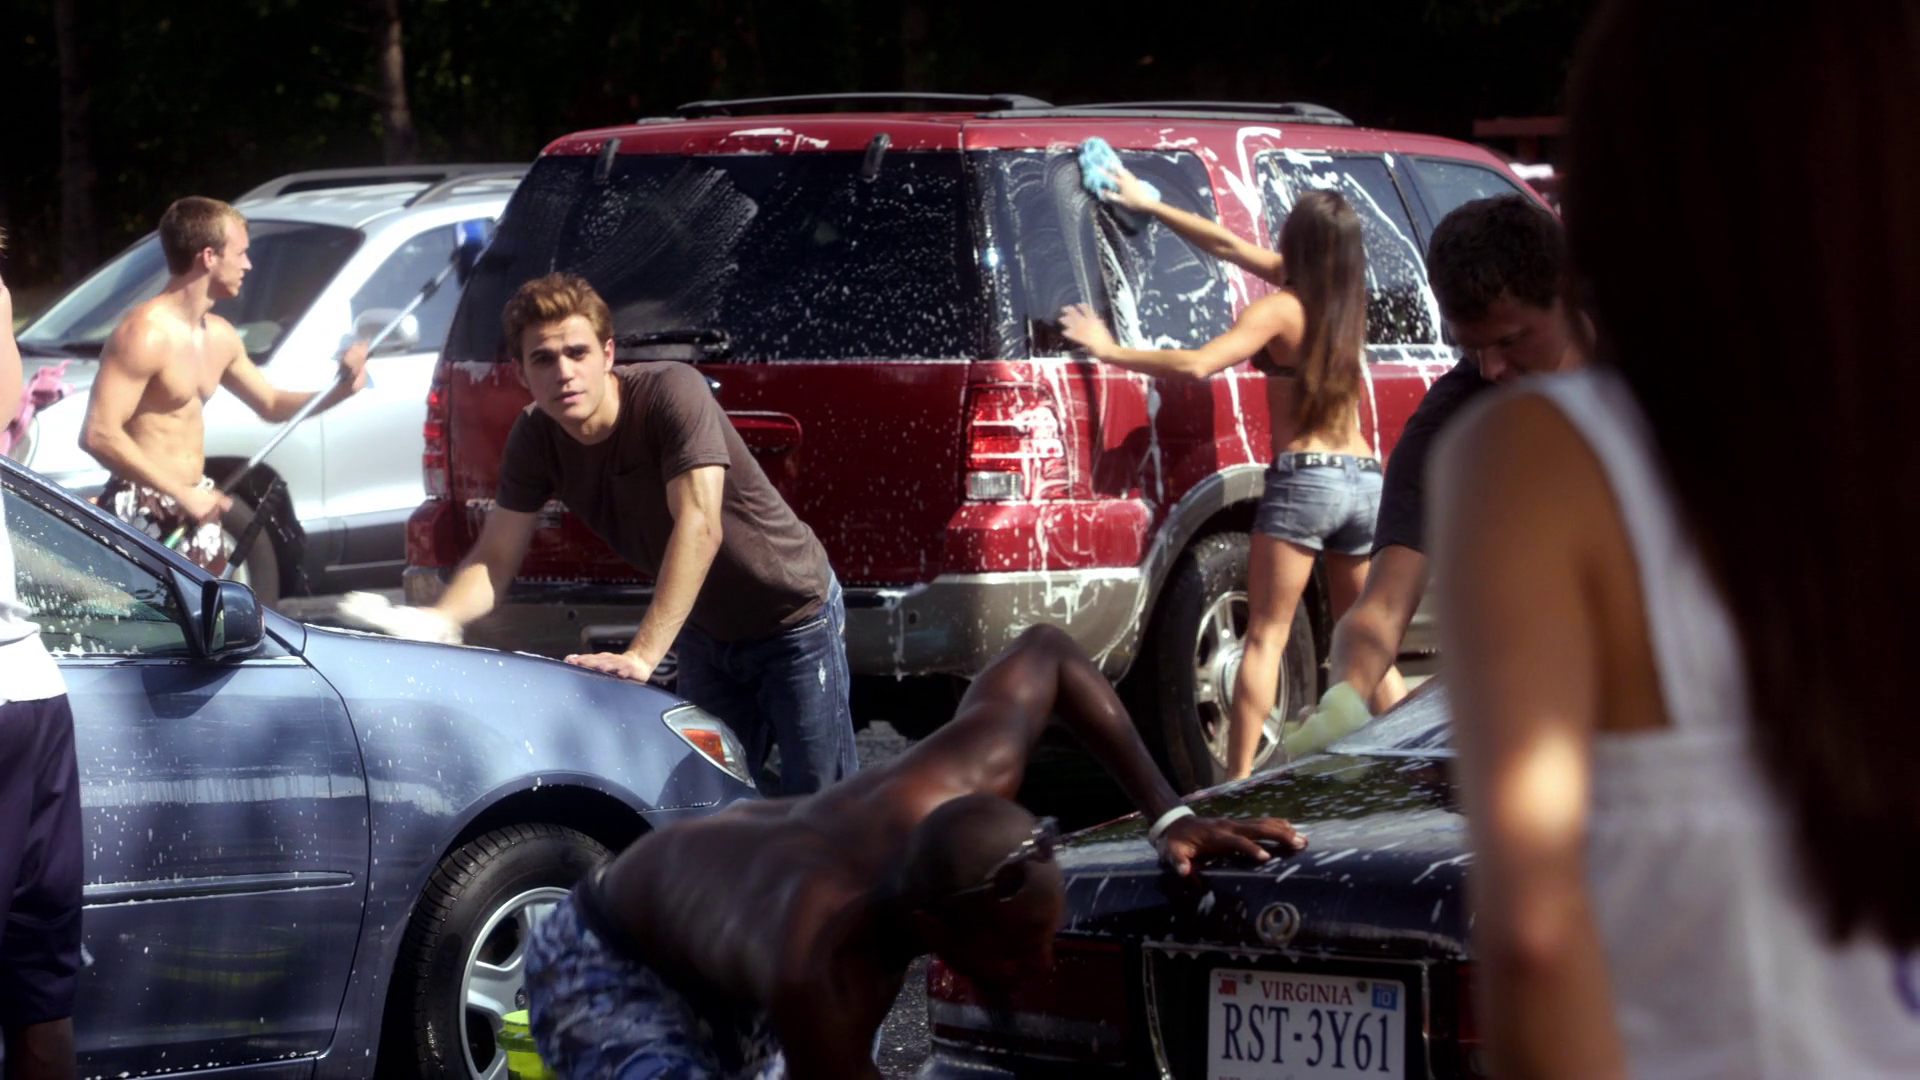 sexy suds car wash the vampire diaries wiki fandom powered by wikia. Black Bedroom Furniture Sets. Home Design Ideas